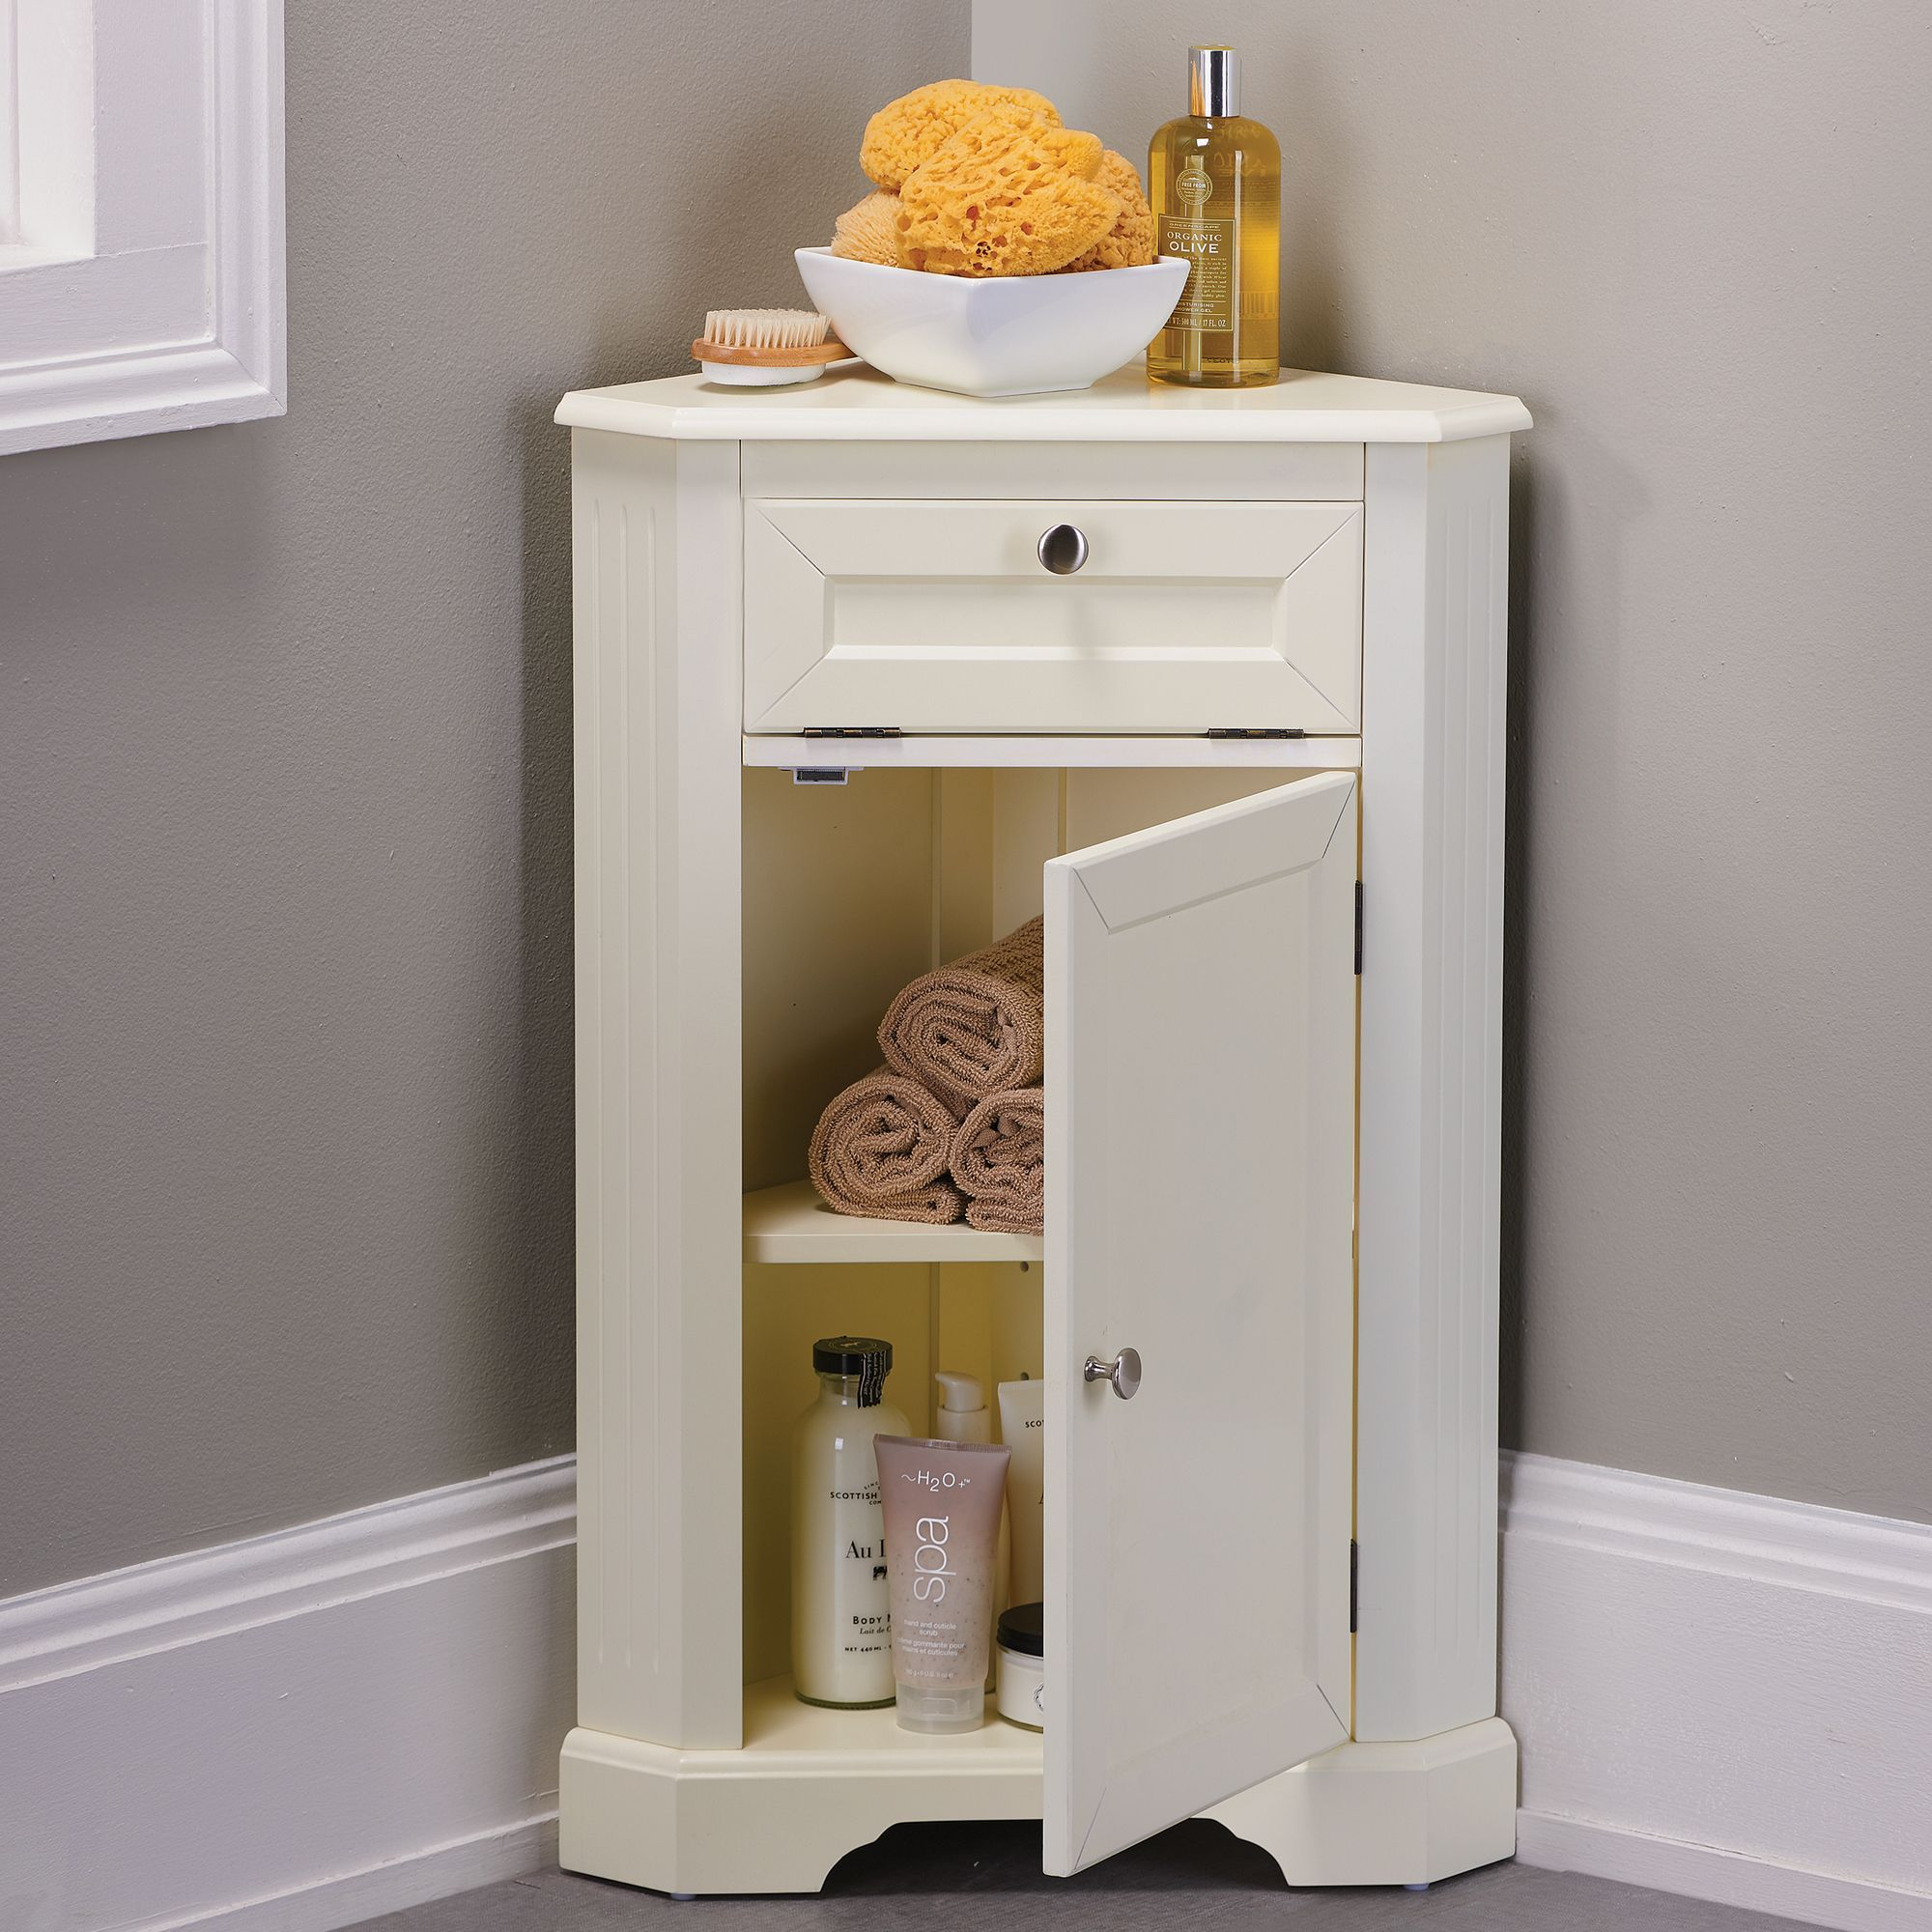 Bathroom corner cabinets - Weatherby Bathroom Corner Storage Cabinet